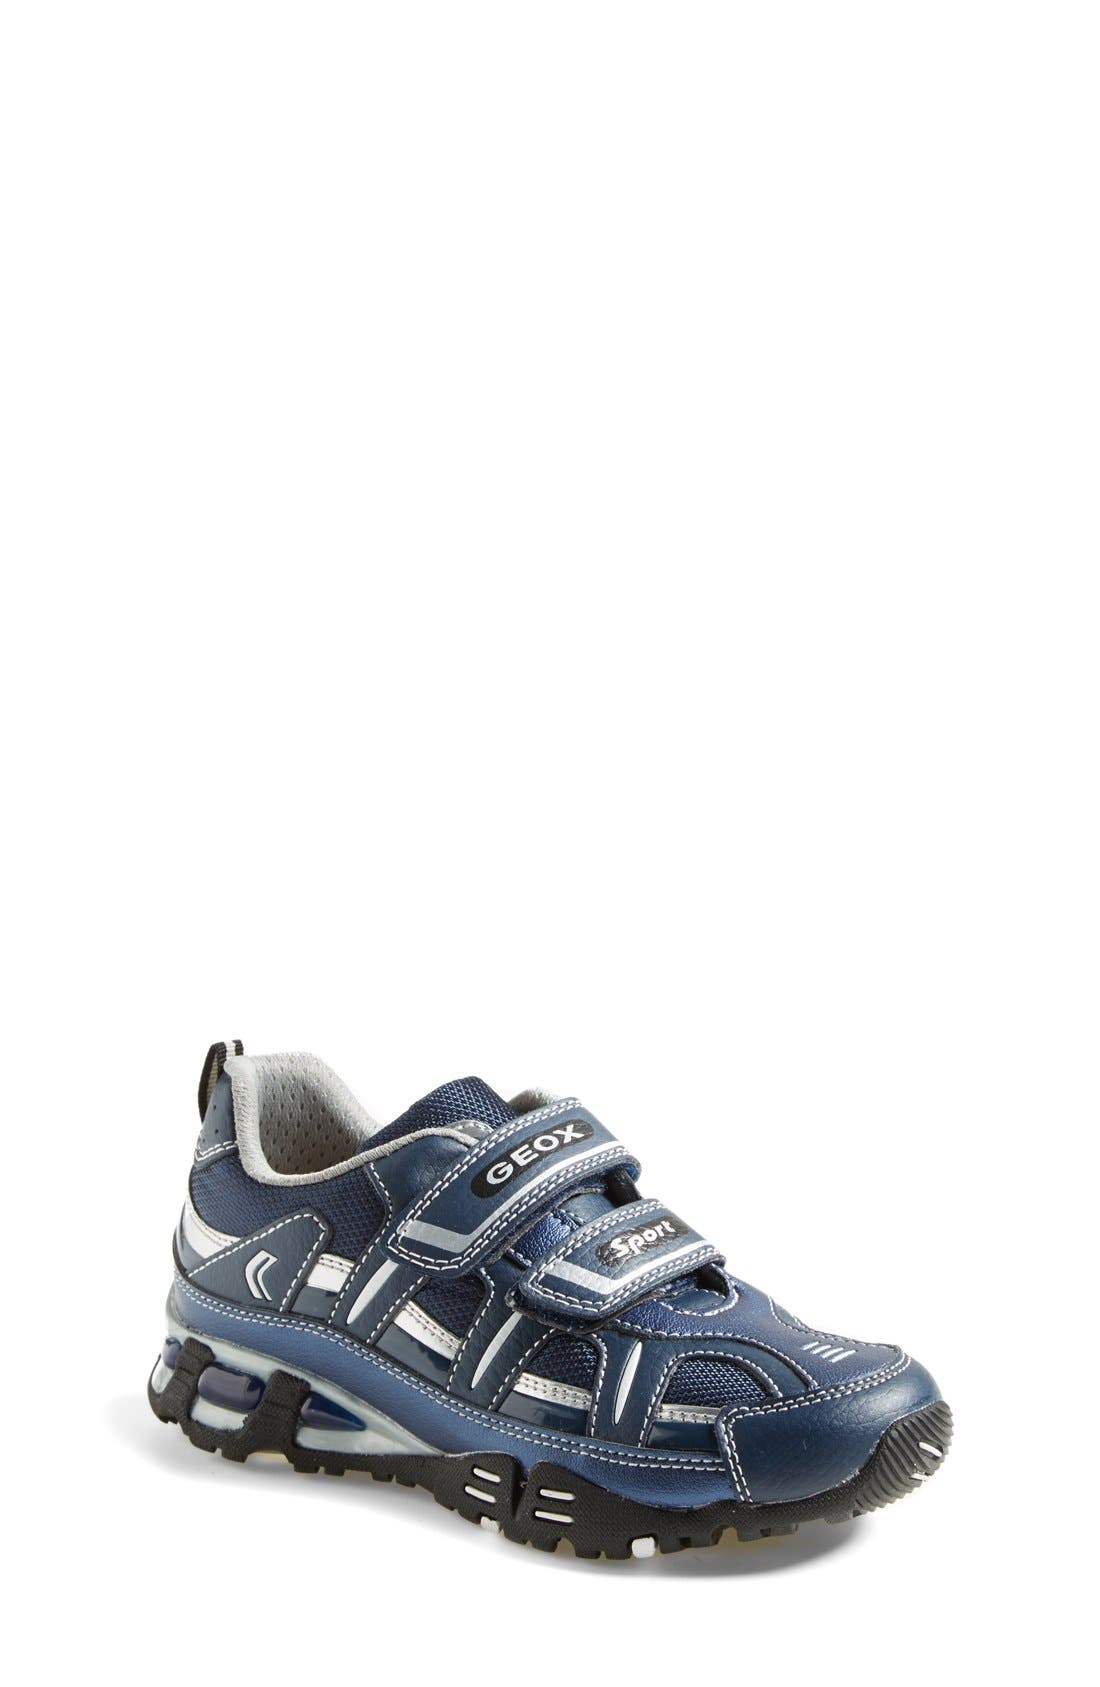 Main Image - Geox 'Light Eclipse 18' Sneaker (Toddler, Little Kid & Big Kid)